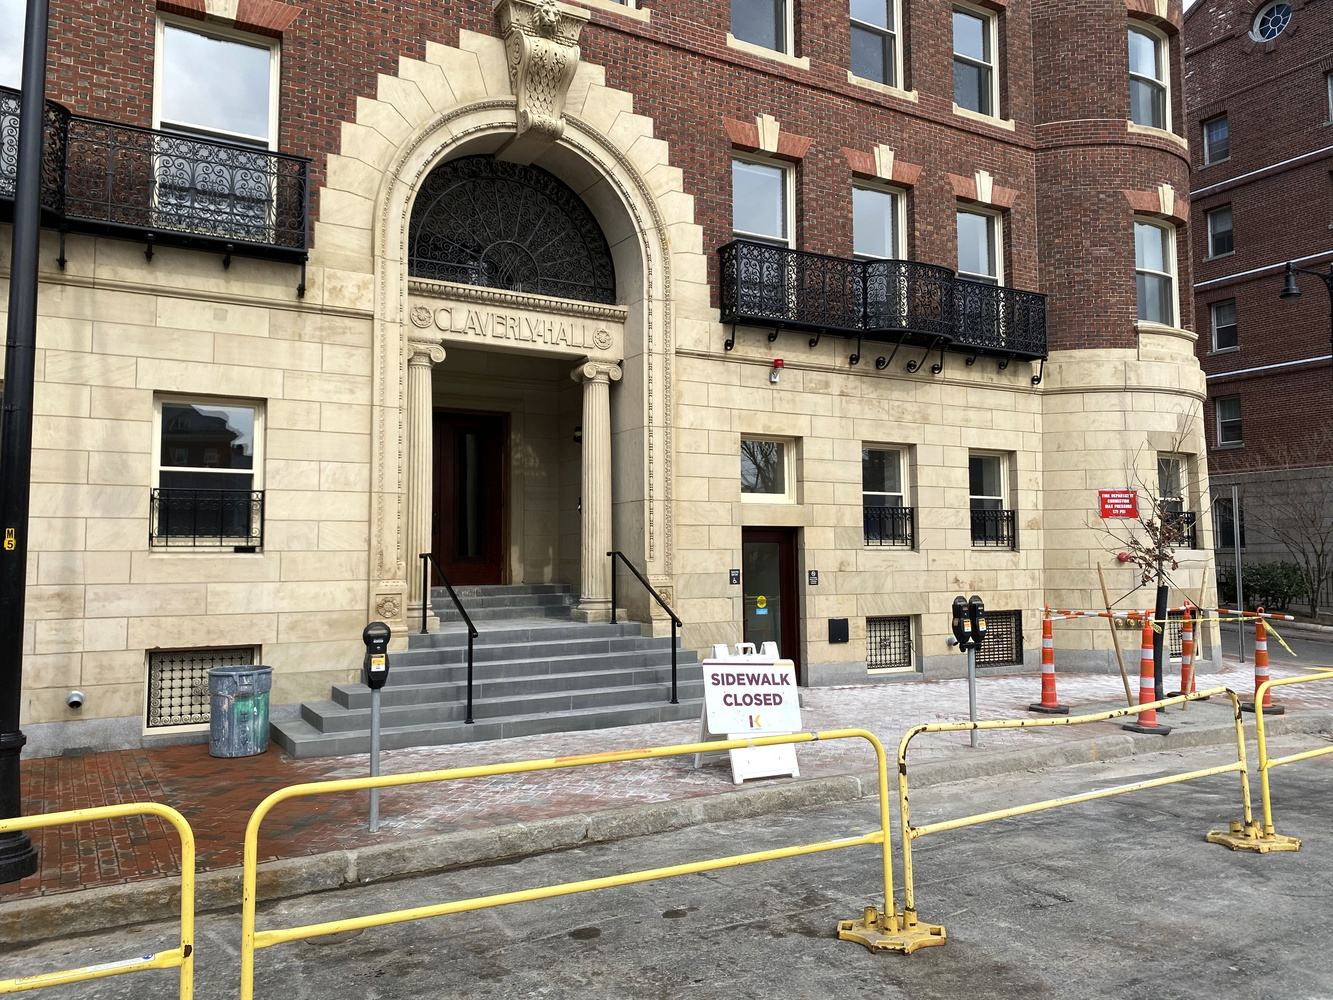 Harvard completed the first phase of its Adams House Renewal Project — renovations to Claverly Hall — earlier this month. Though the exterior of Claverly remains the same, the interior has seen a significant overhaul.